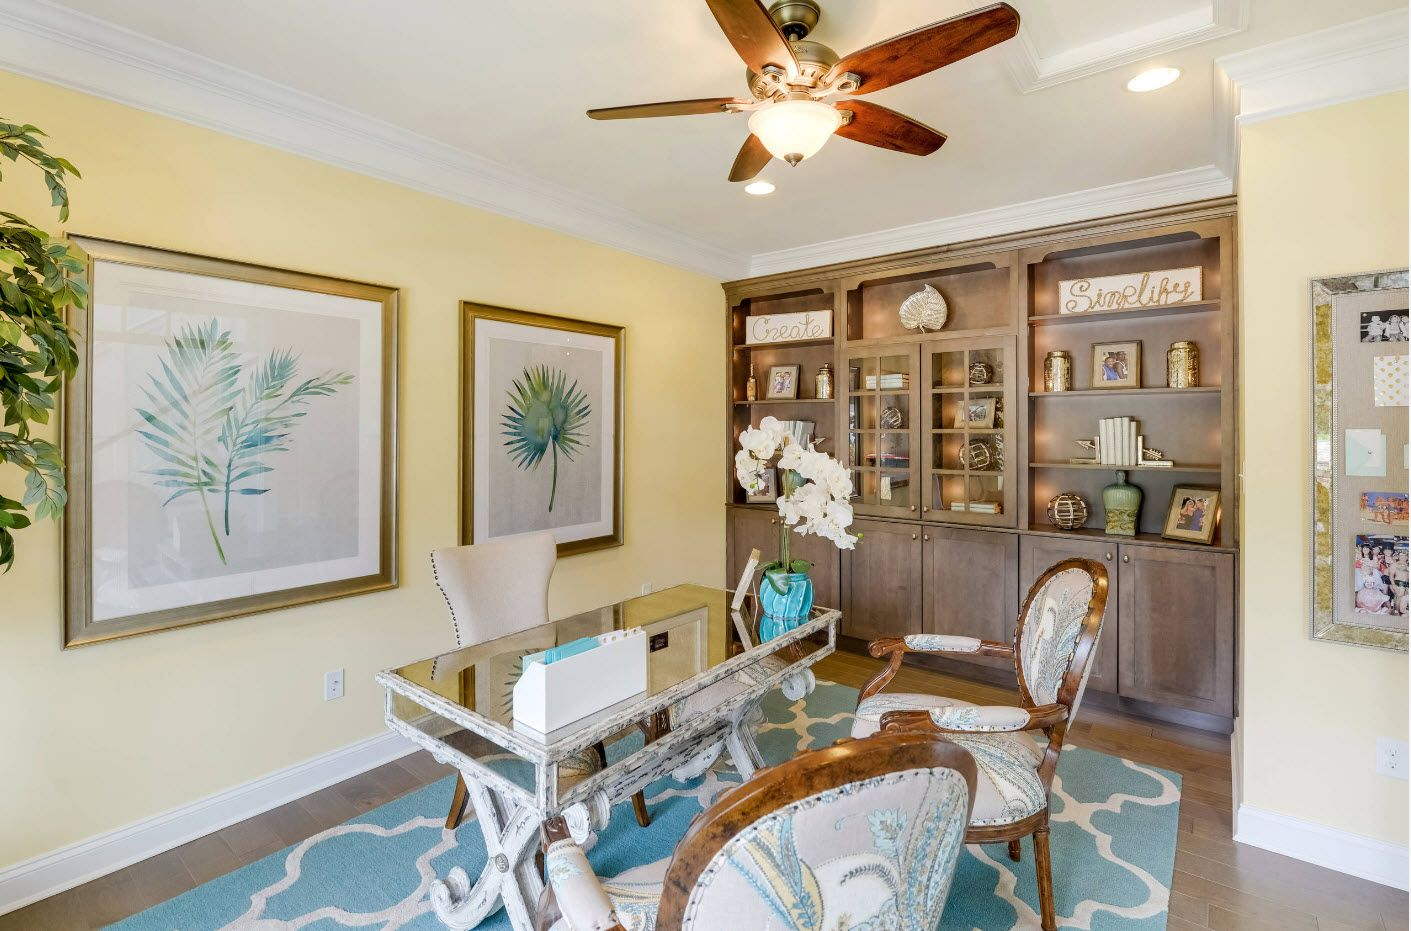 Air fan and the glass table at the classic styled home office